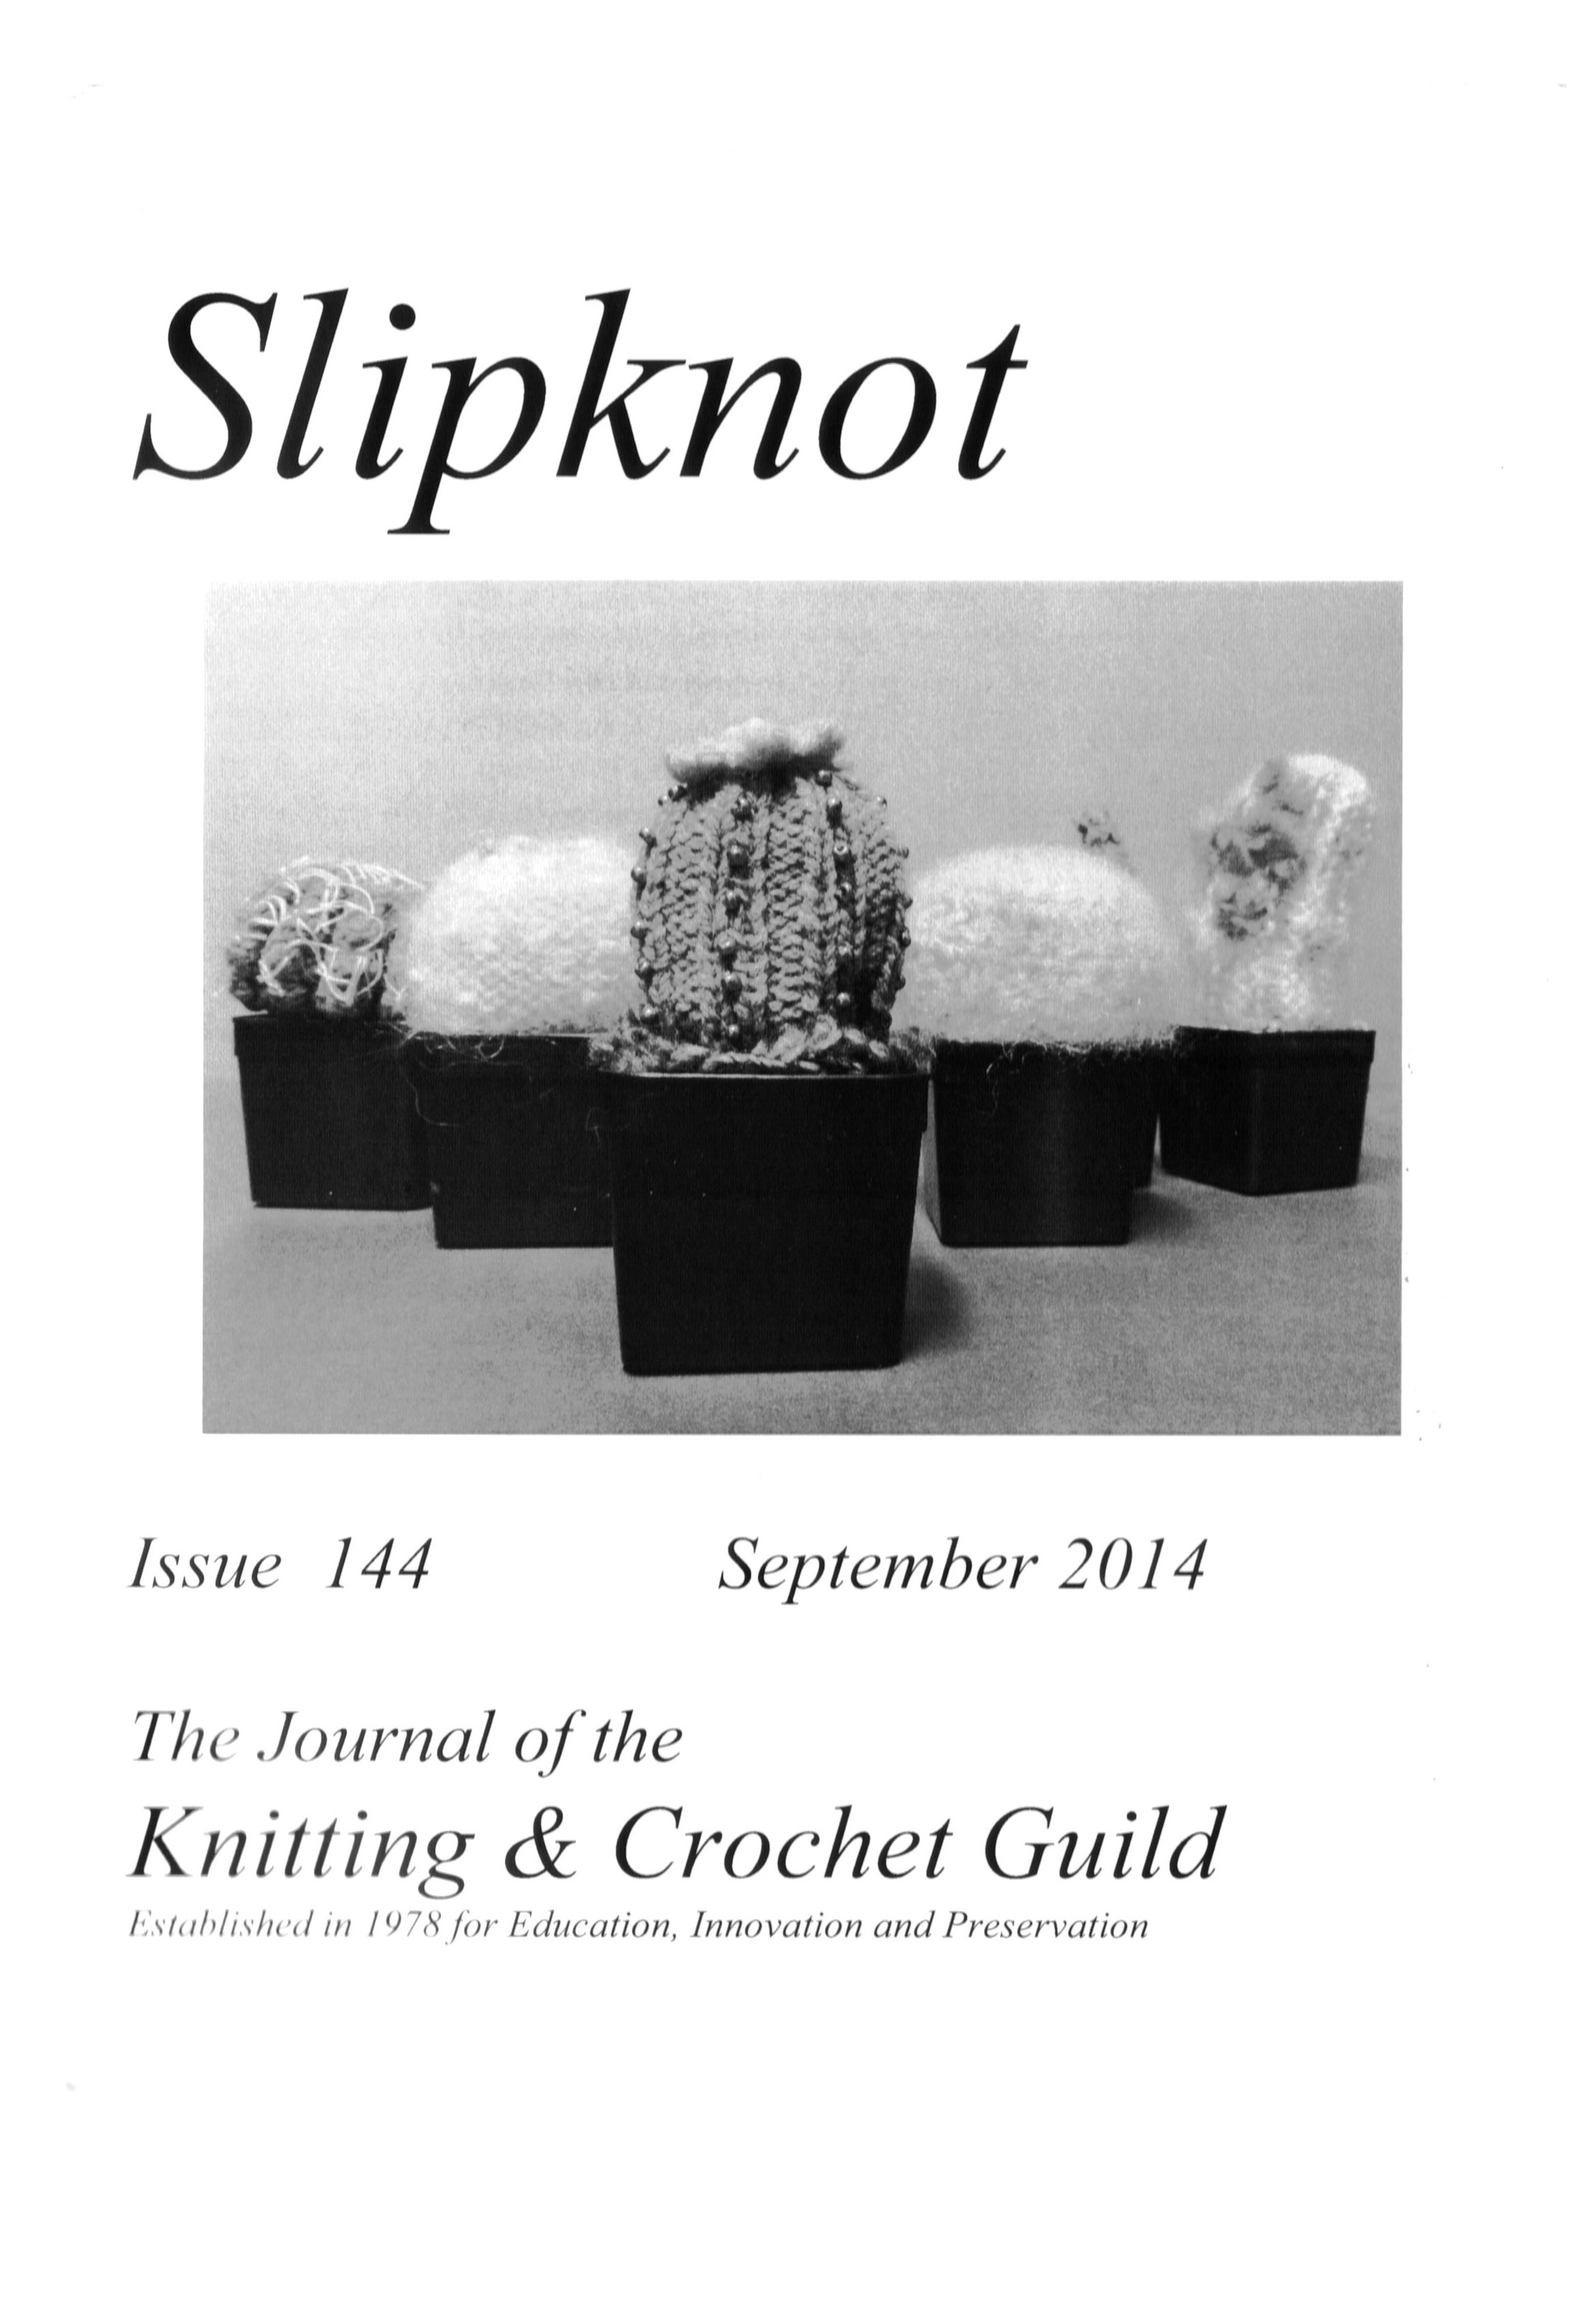 Slipknot Knitting Crochet Guild First Stich Slip Knot Diagram 144 September 2014 Cover Picture Knitted Cacti In The Collection Courtesy Of Barbara Smith See Evangeline Mcnicols Section